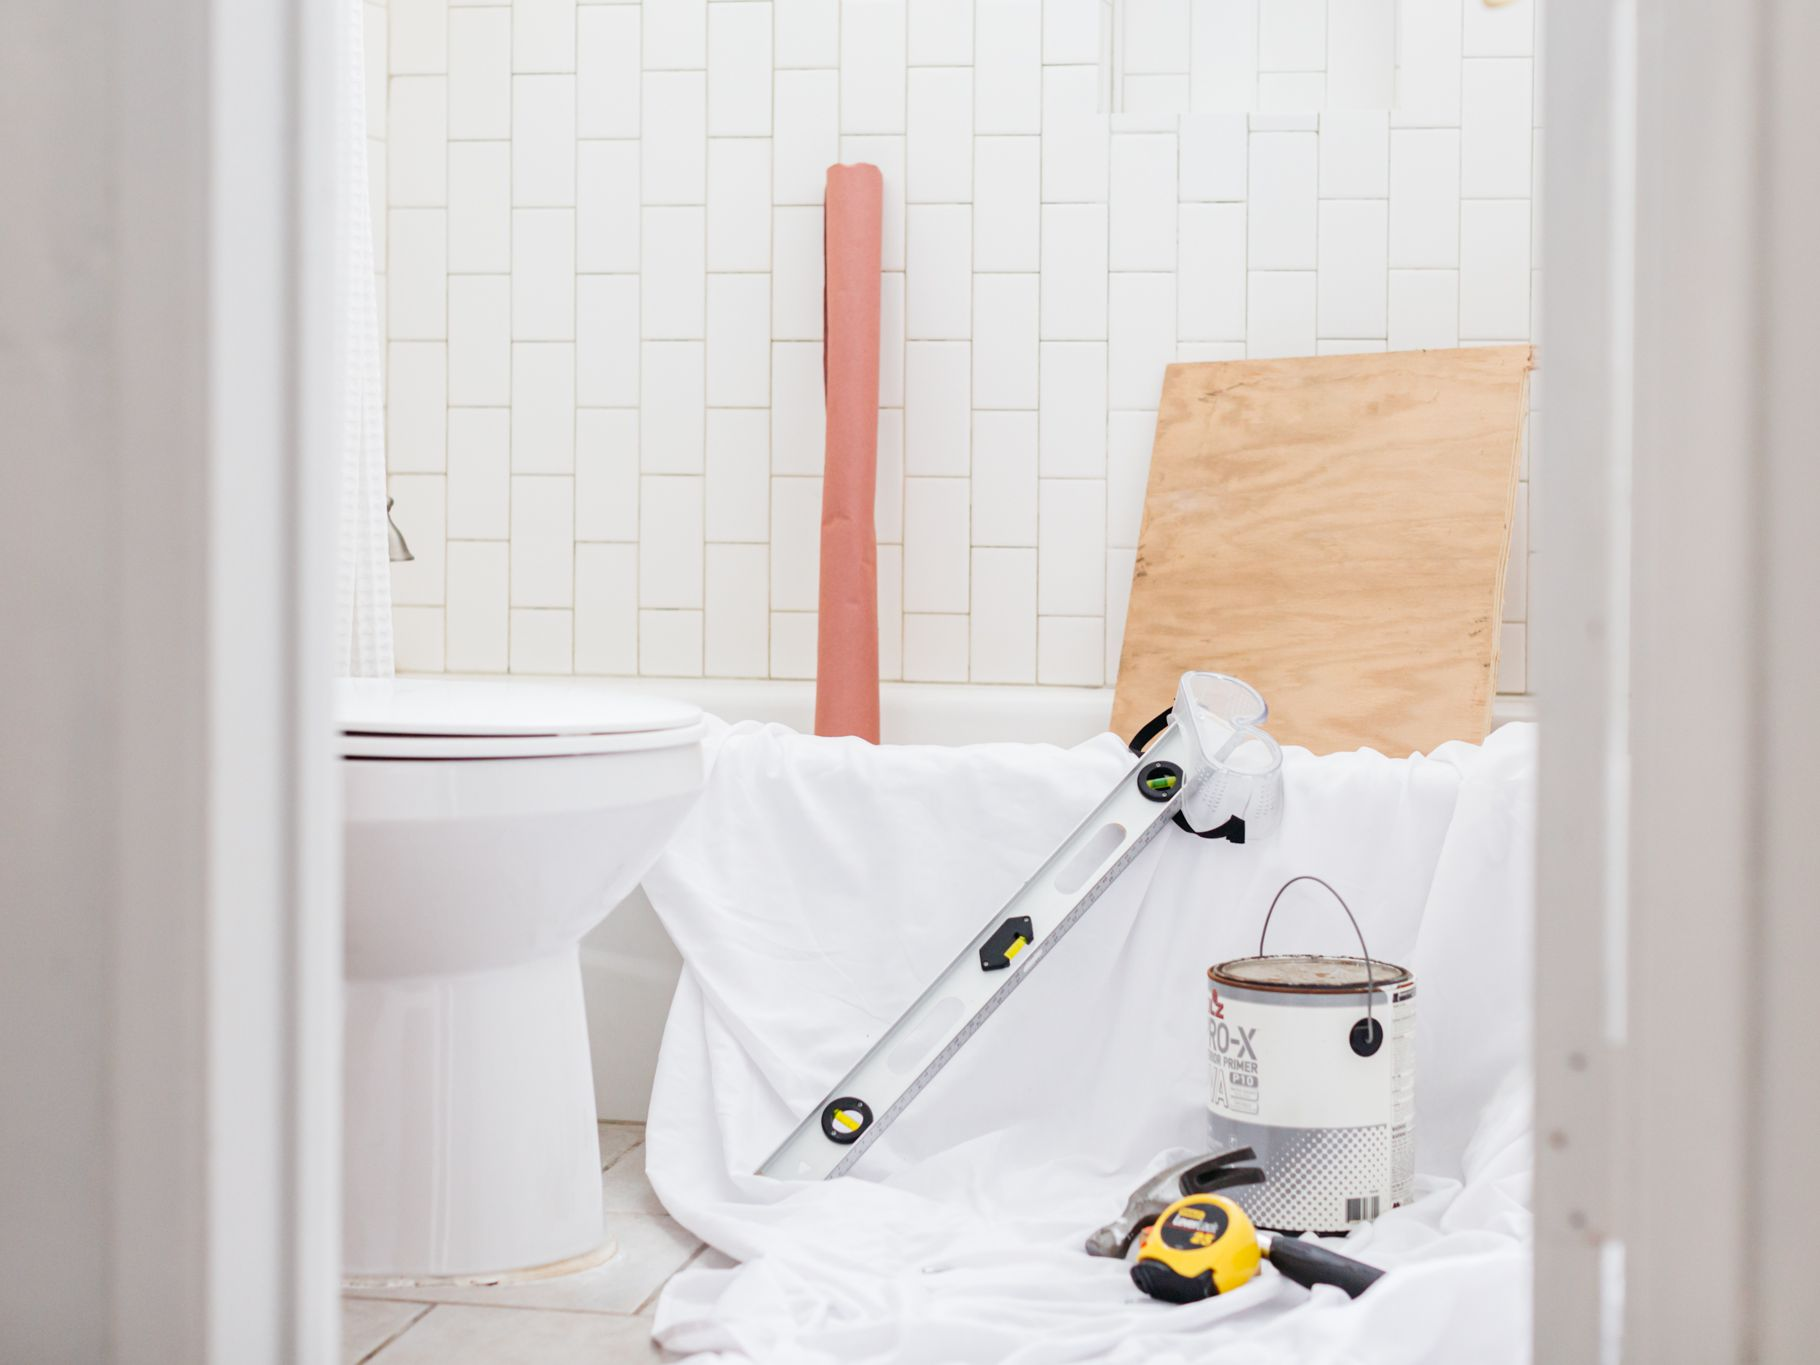 Remodeling Your Small Bathroom Quickly, Remodel A Small Bathroom